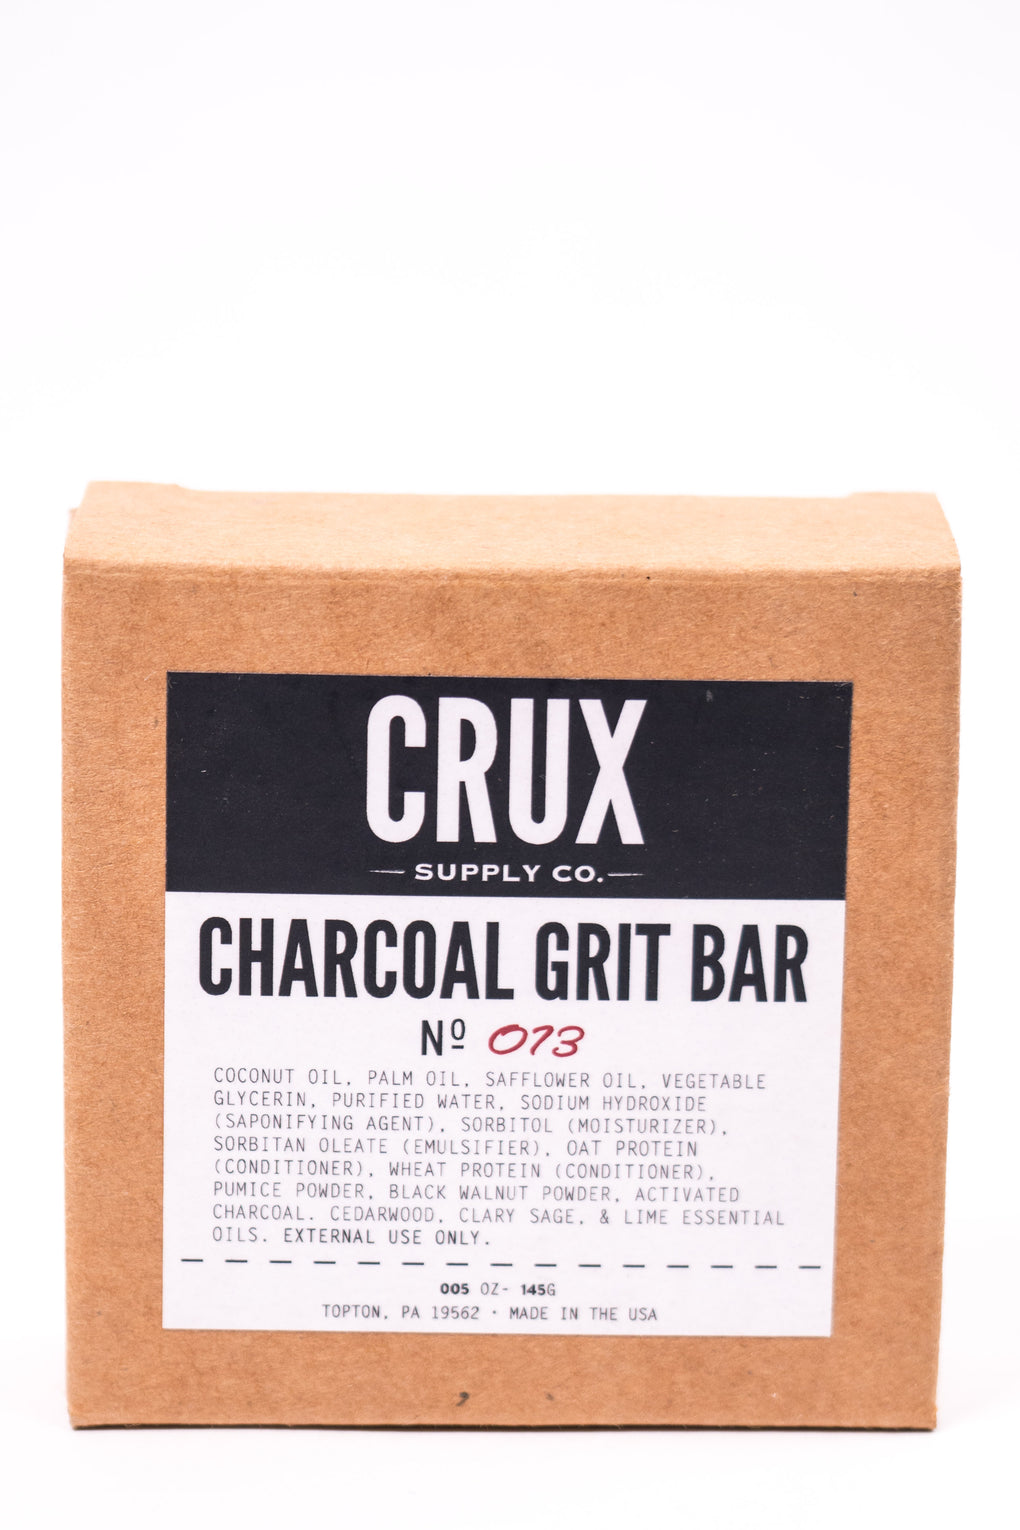 Crux Charcoal Grit Soap at Consigliere